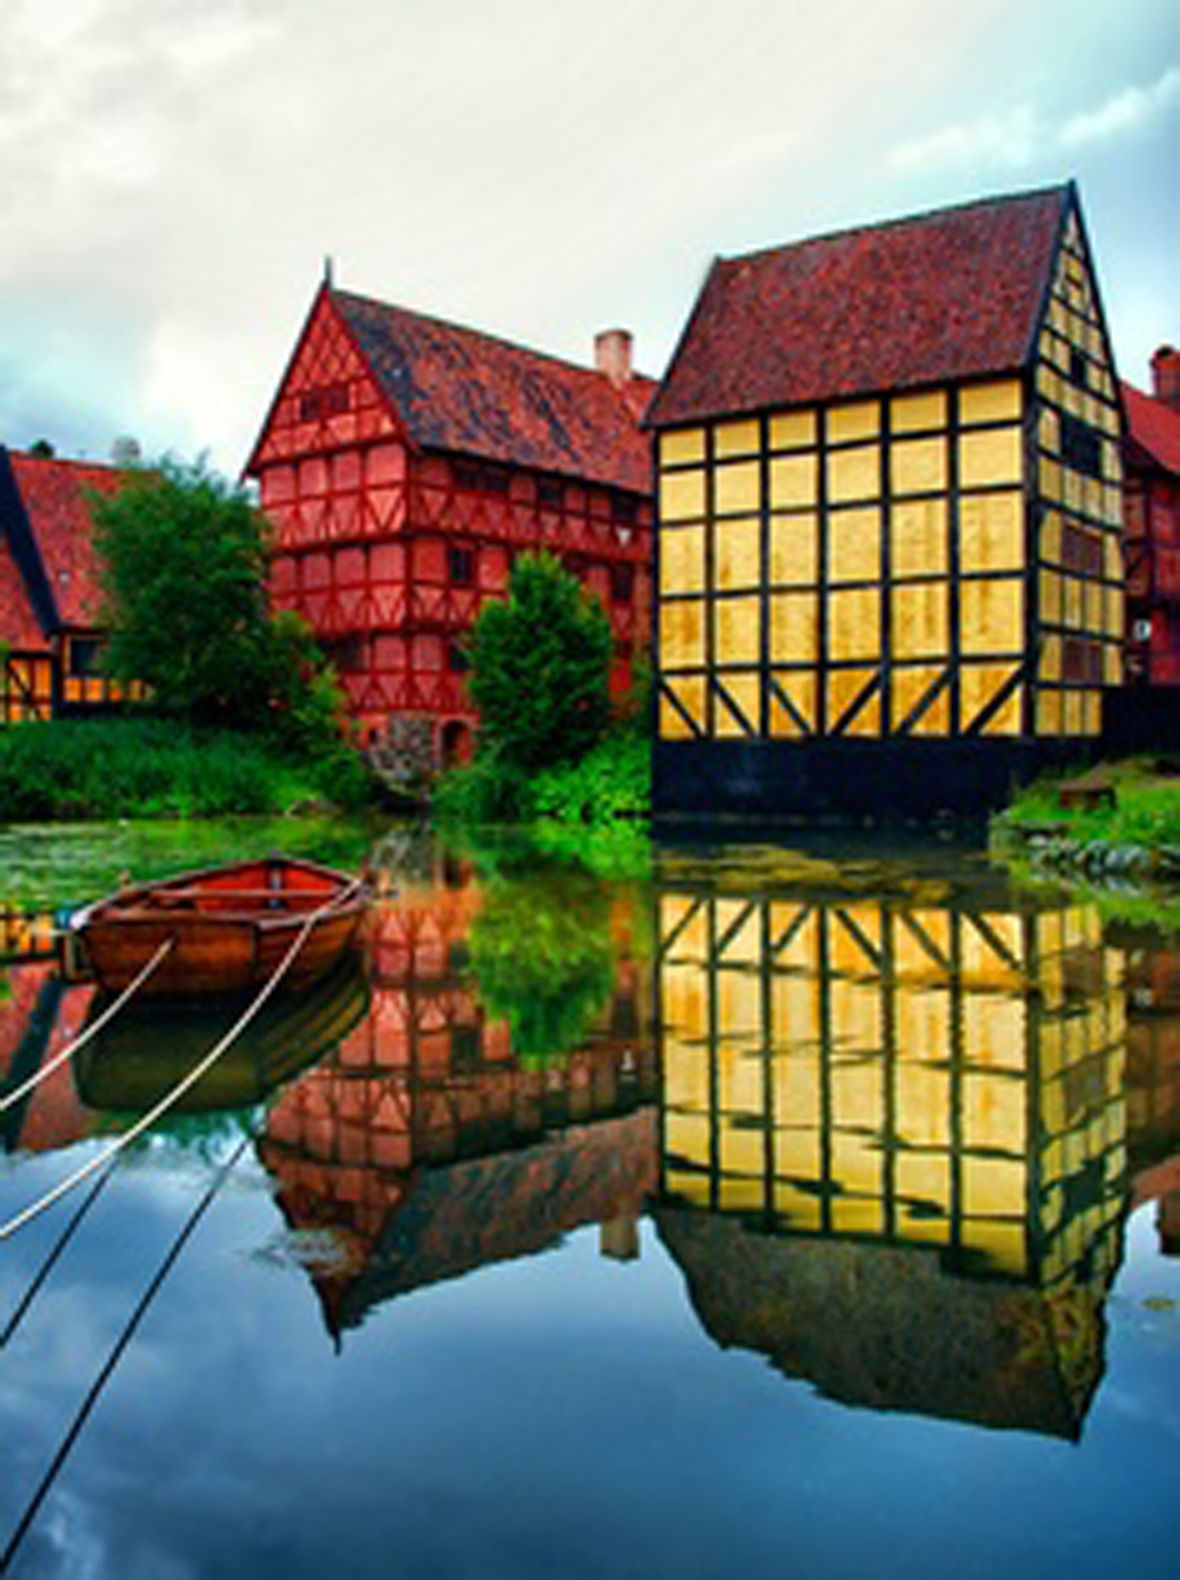 Aarhus, Denmark I want to go see this place one day. Please check out my website Thanks.  www.photopix.co.nz